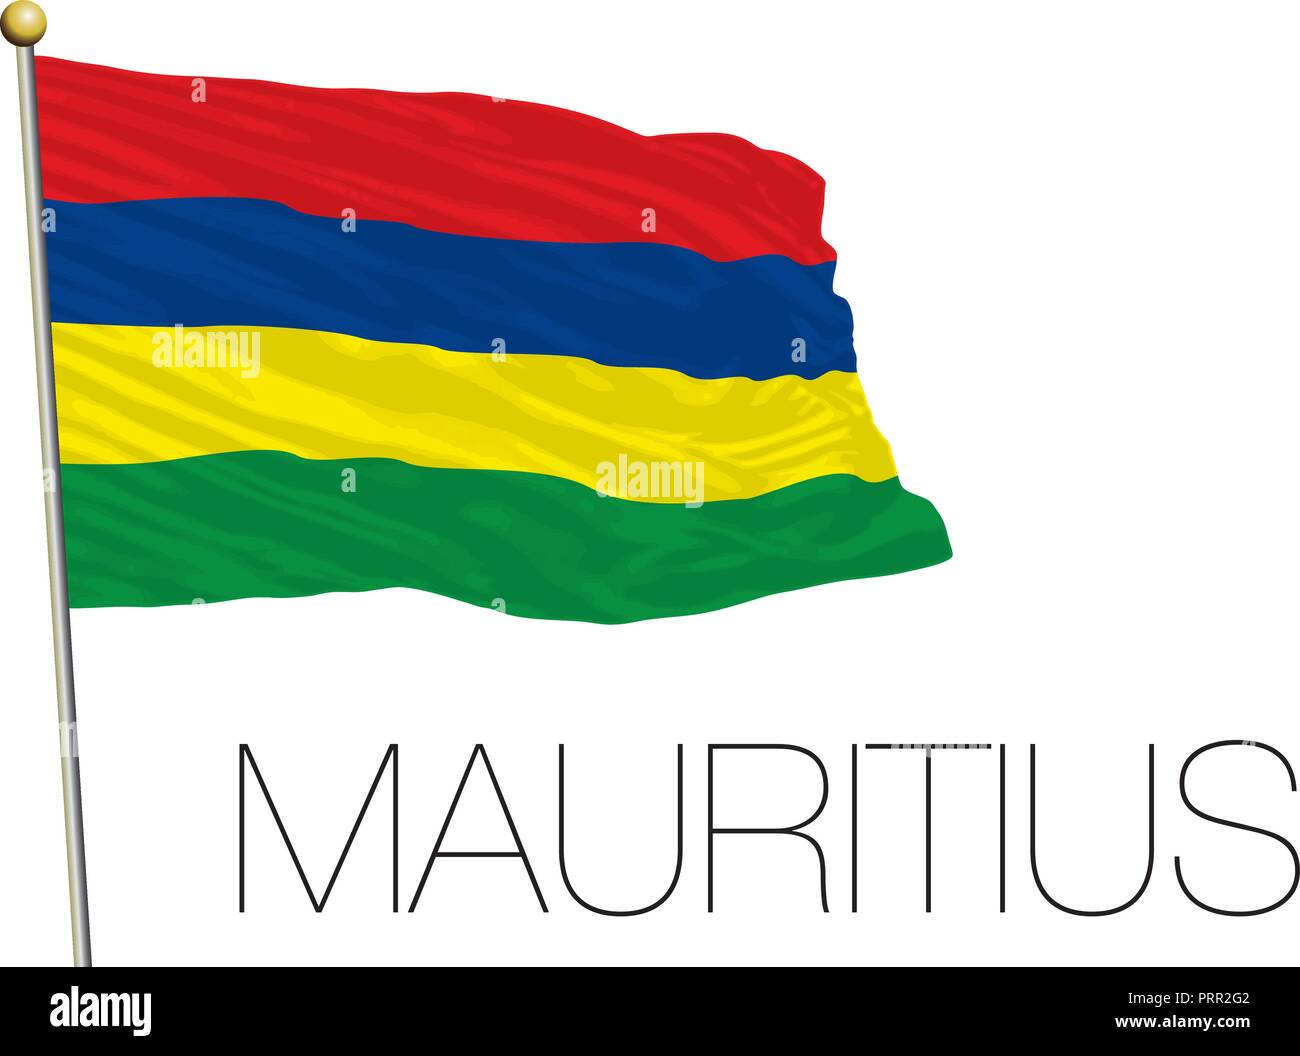 Mauritius official flag, vector illustration Stock Vector